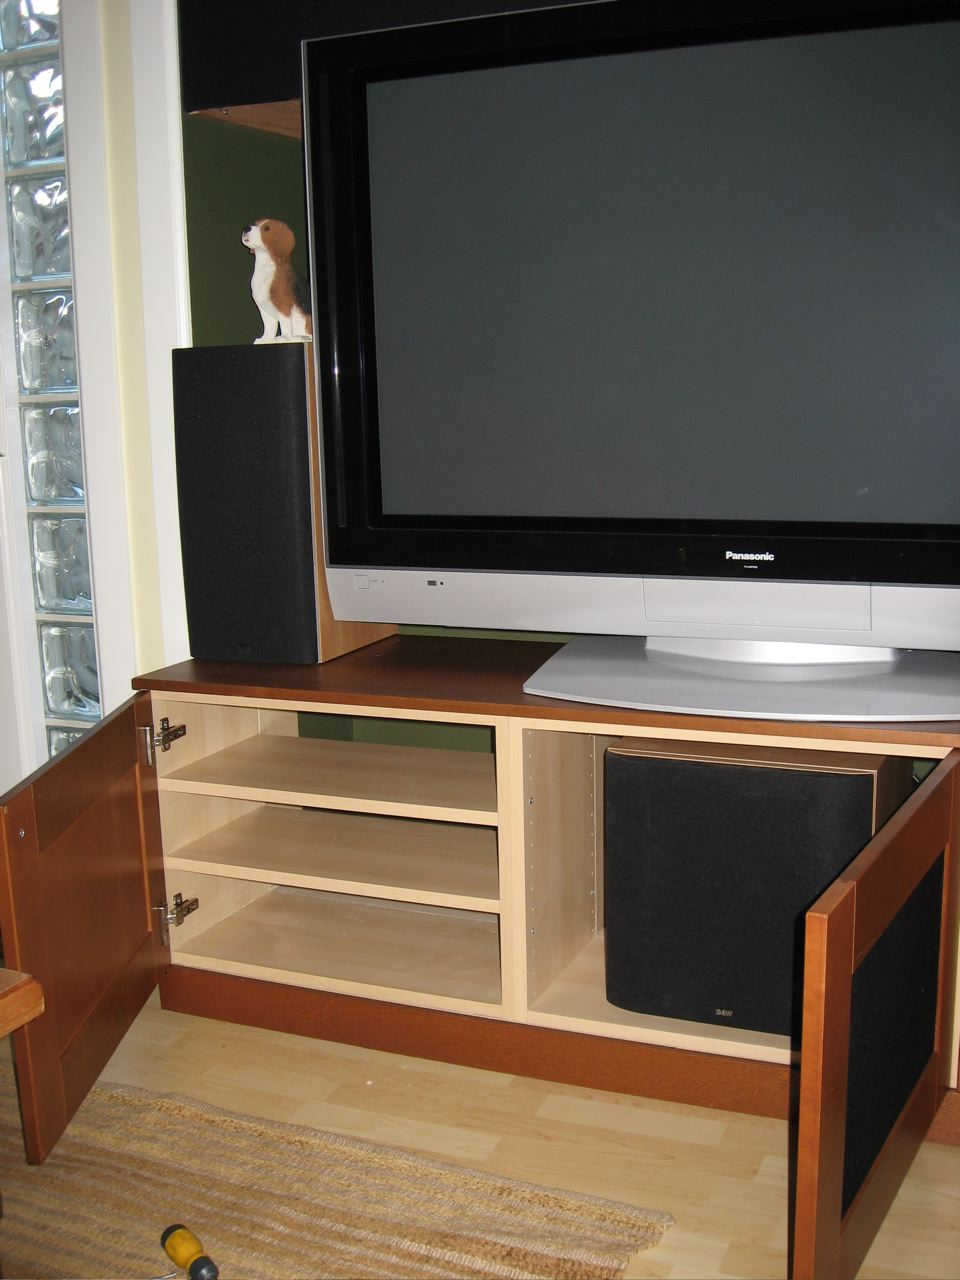 Tv Unit With Subwoofer Space Ikea Hackers